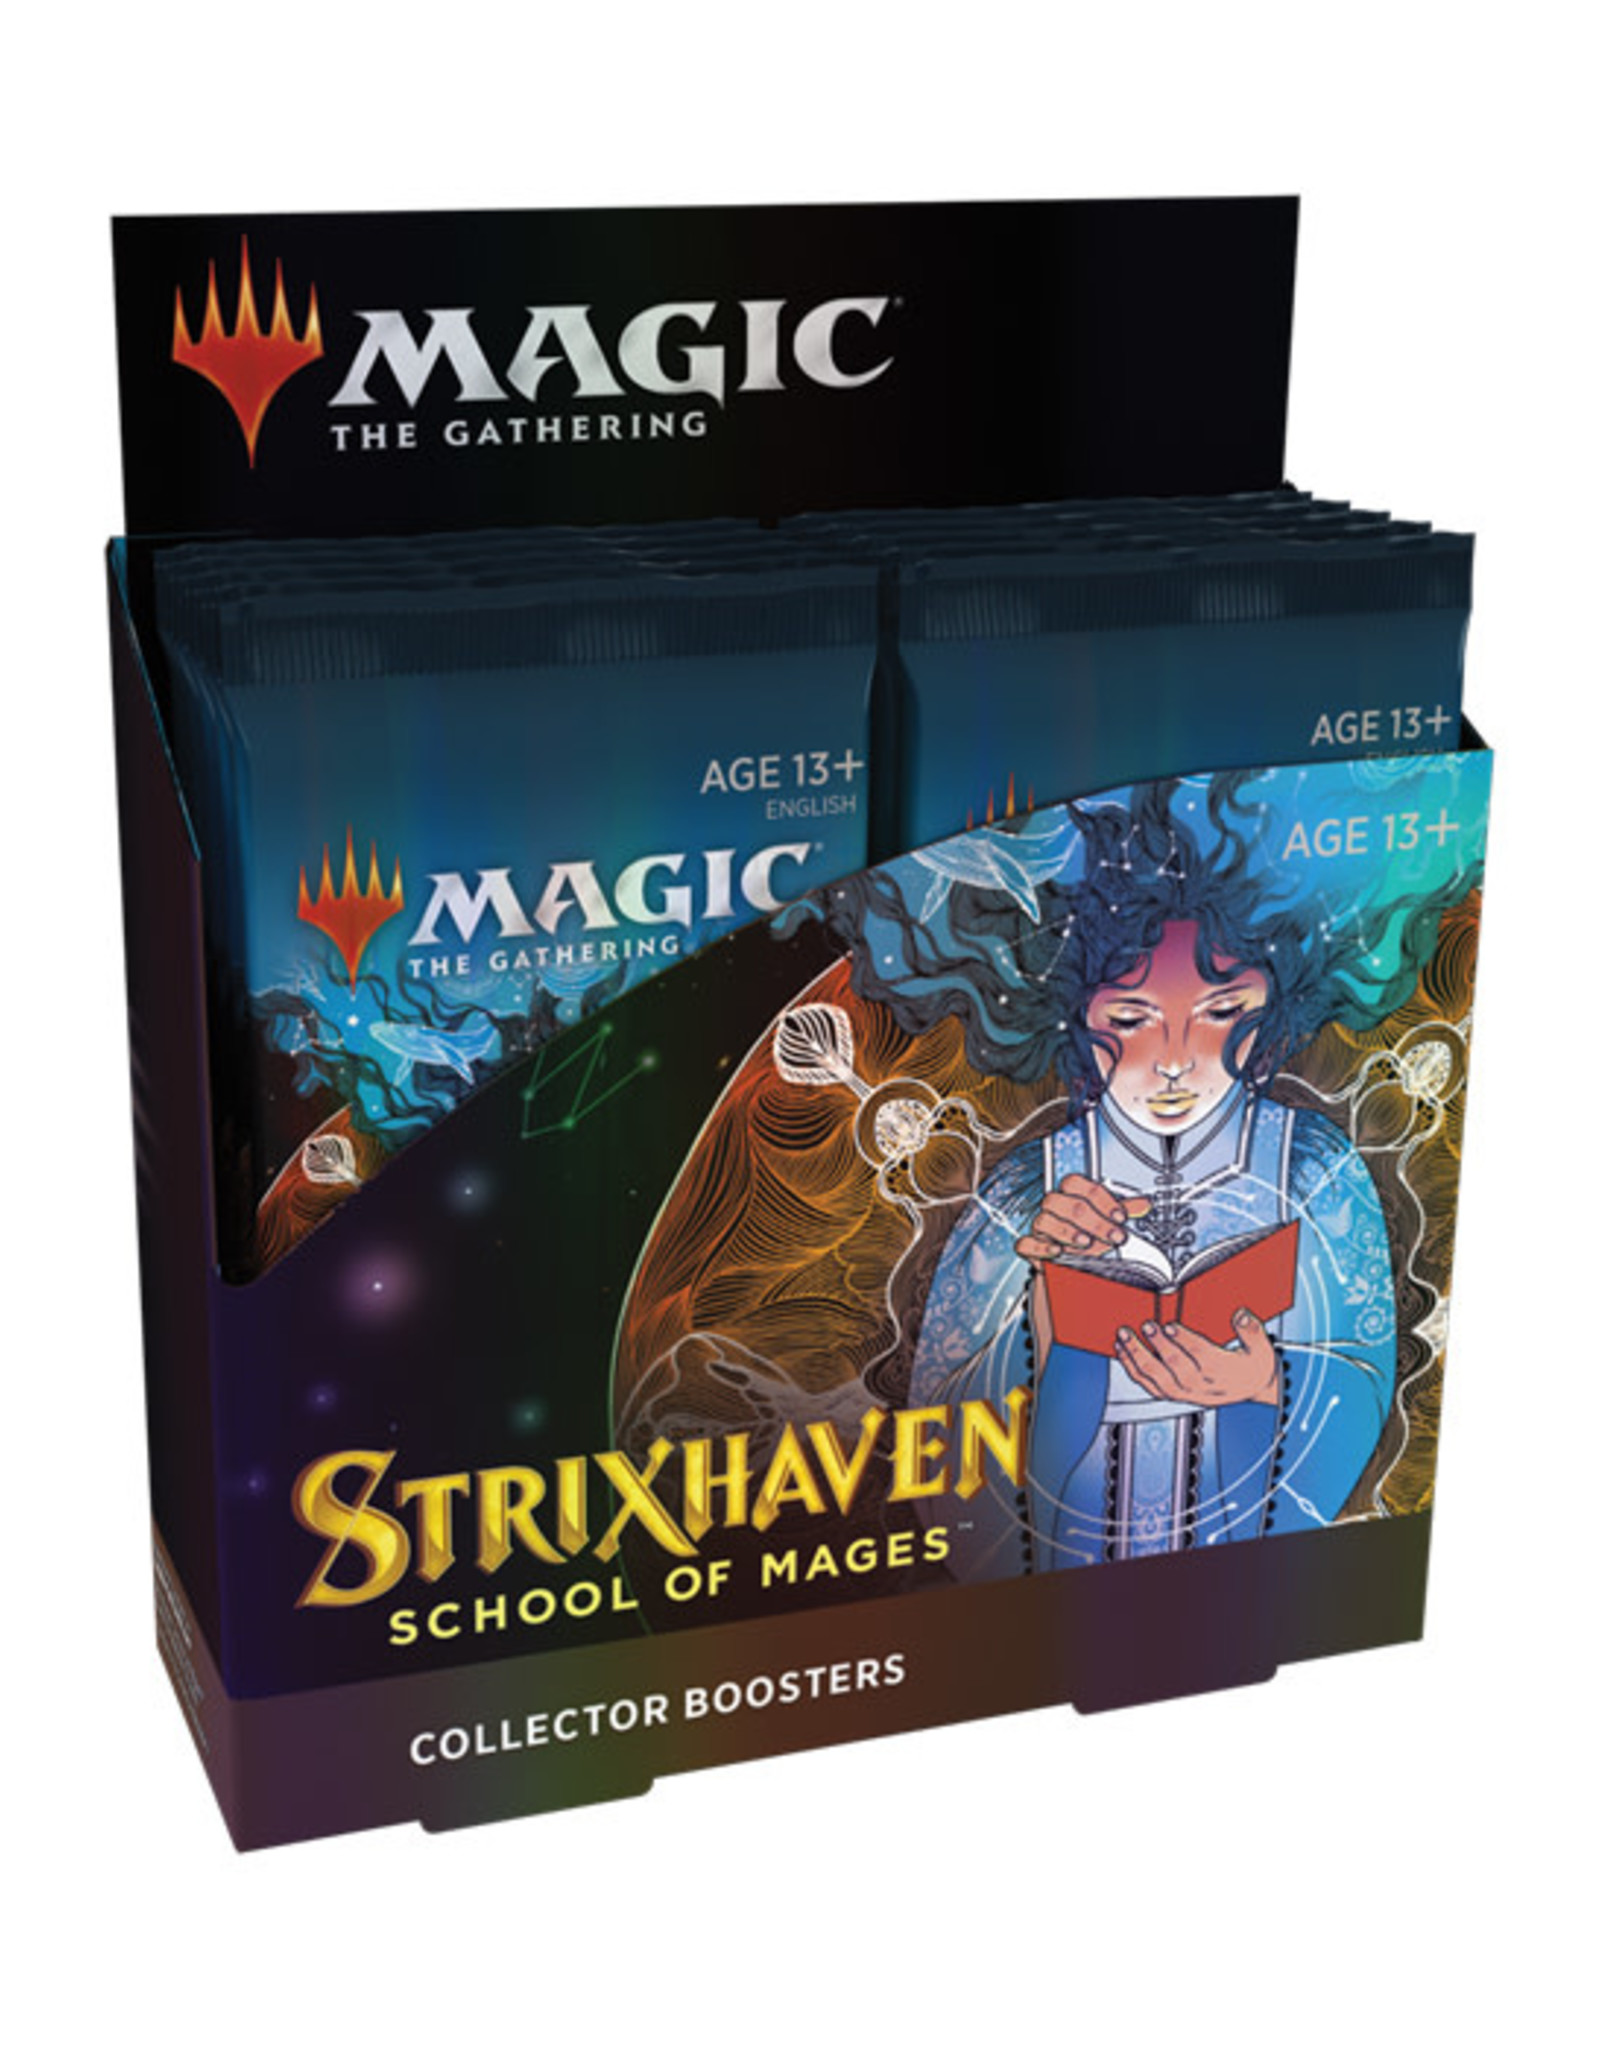 Magic: The Gathering Magic: The Gathering - Strixhaven - Collector Booster Box